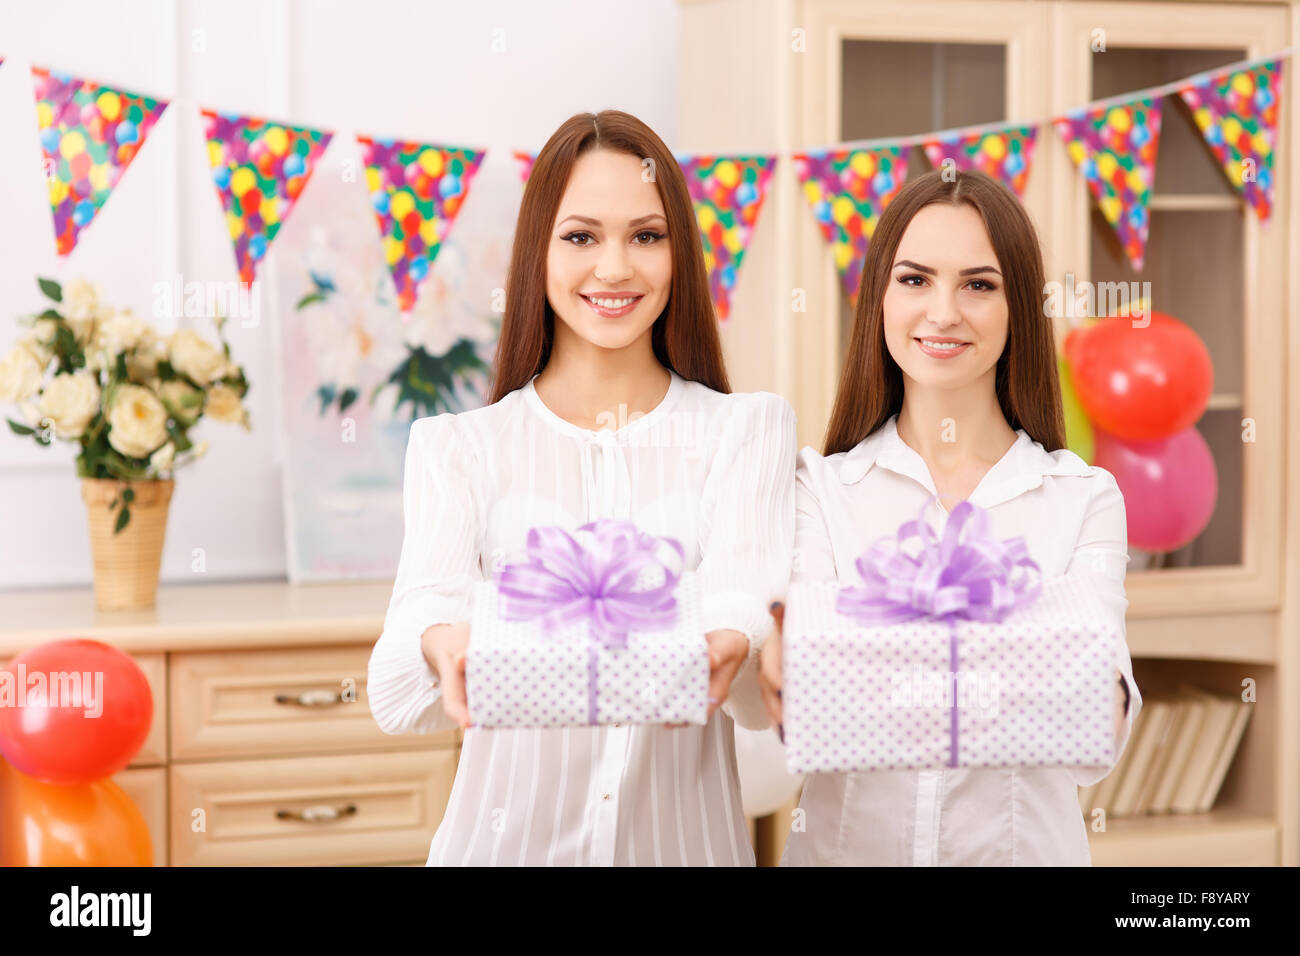 Two young girls are offering presents. - Stock Image